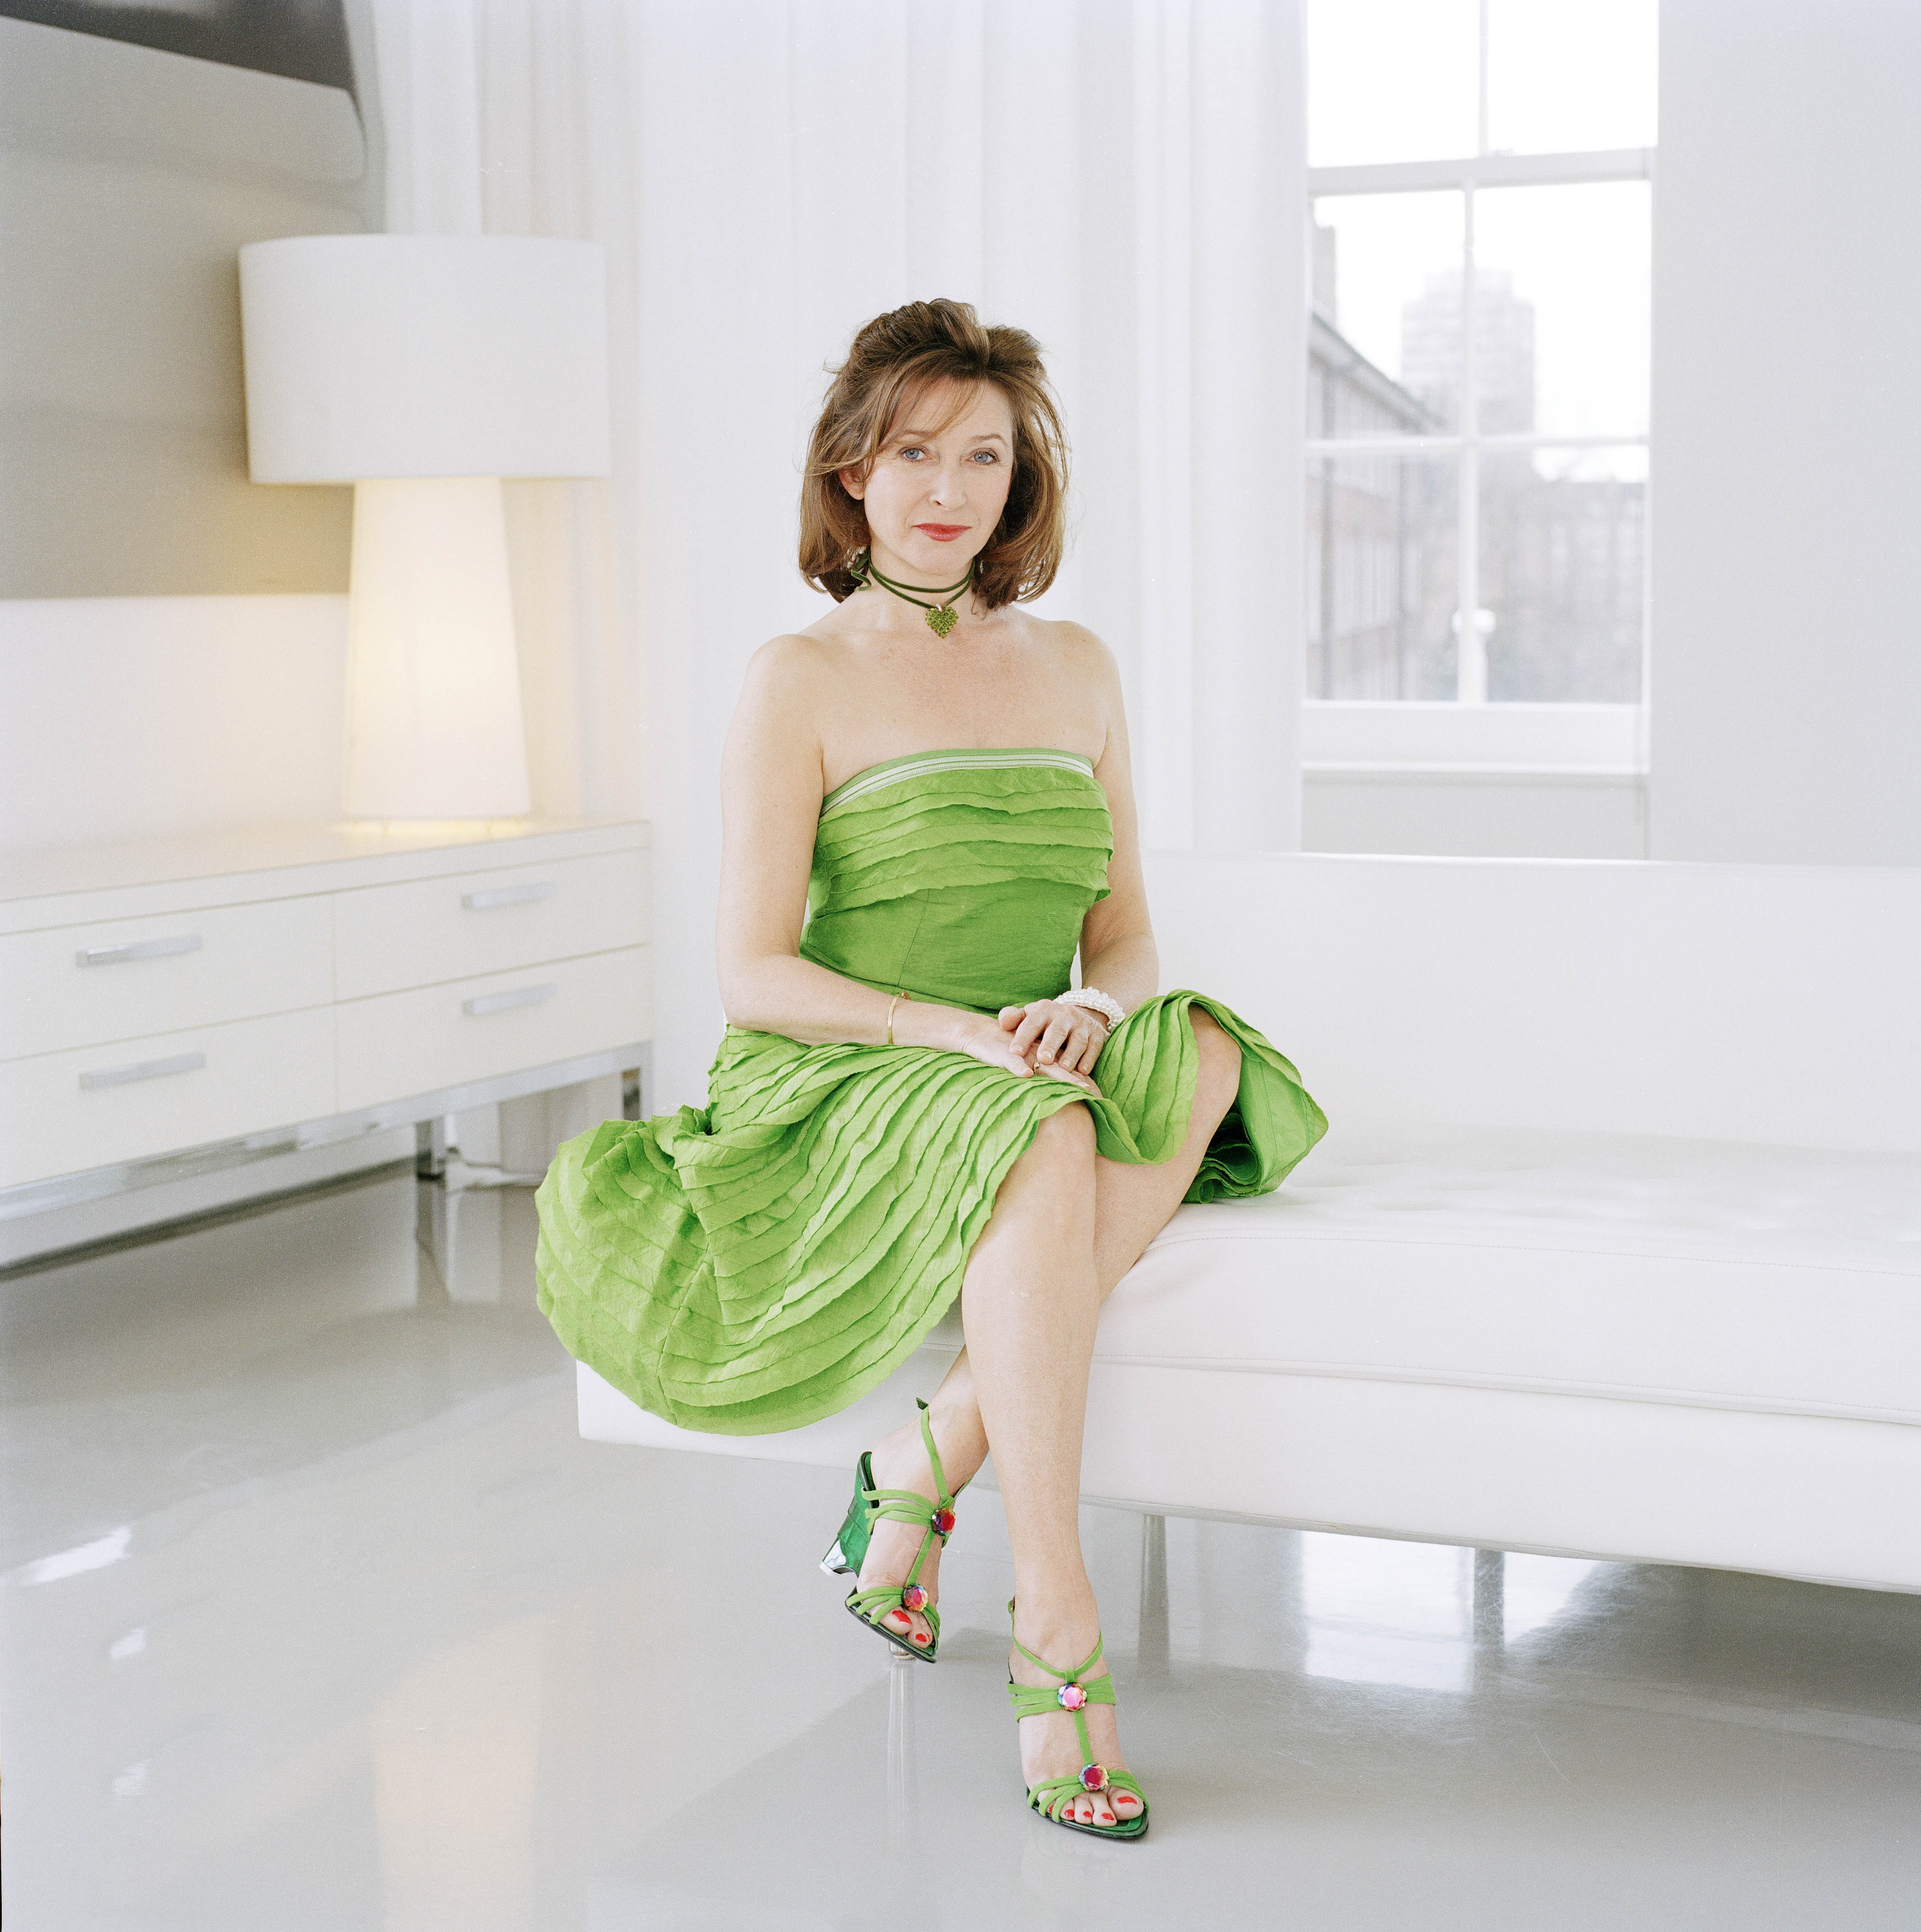 Cherie Lunghi (born 1952) Cherie Lunghi (born 1952) new photo